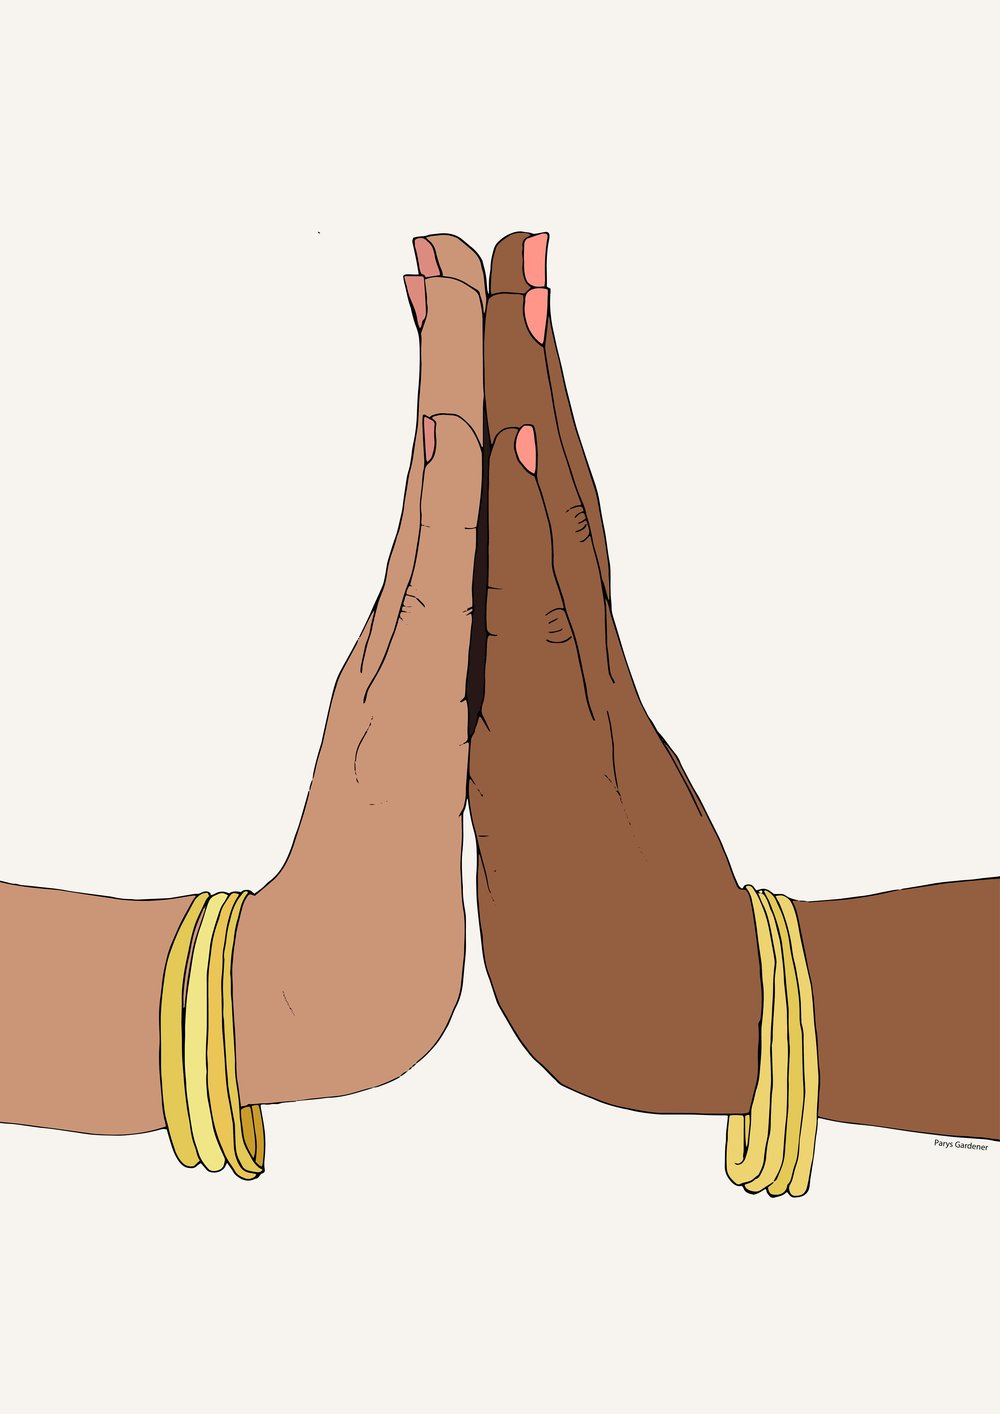 Healing Hands (Dismantling Colourism) parysgardener art  digital illustrator